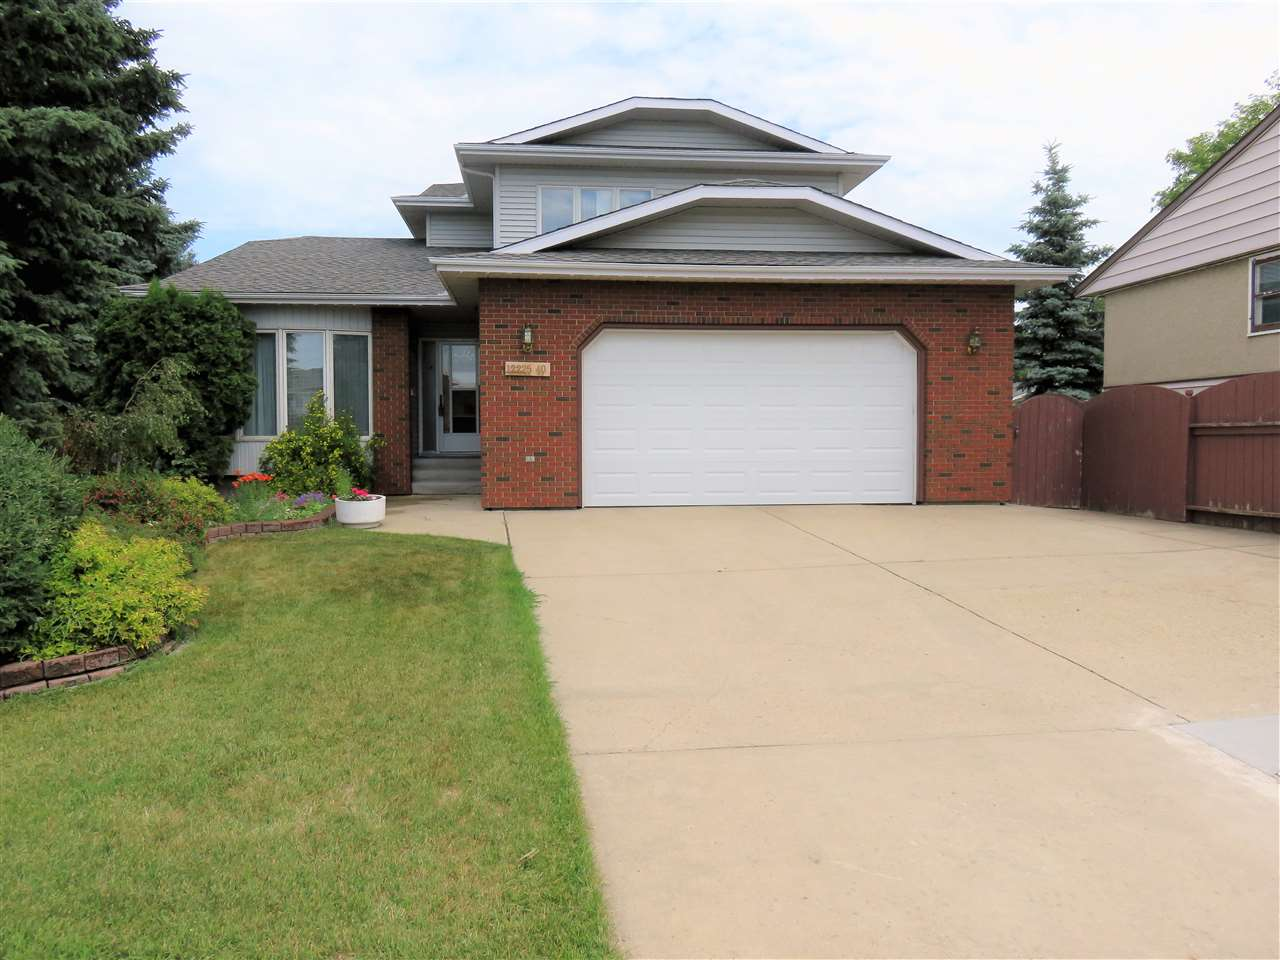 Frontal view of this 2Storey Home! Note the oversized 26x24 double garage with the long driveway for 4+vehicles!